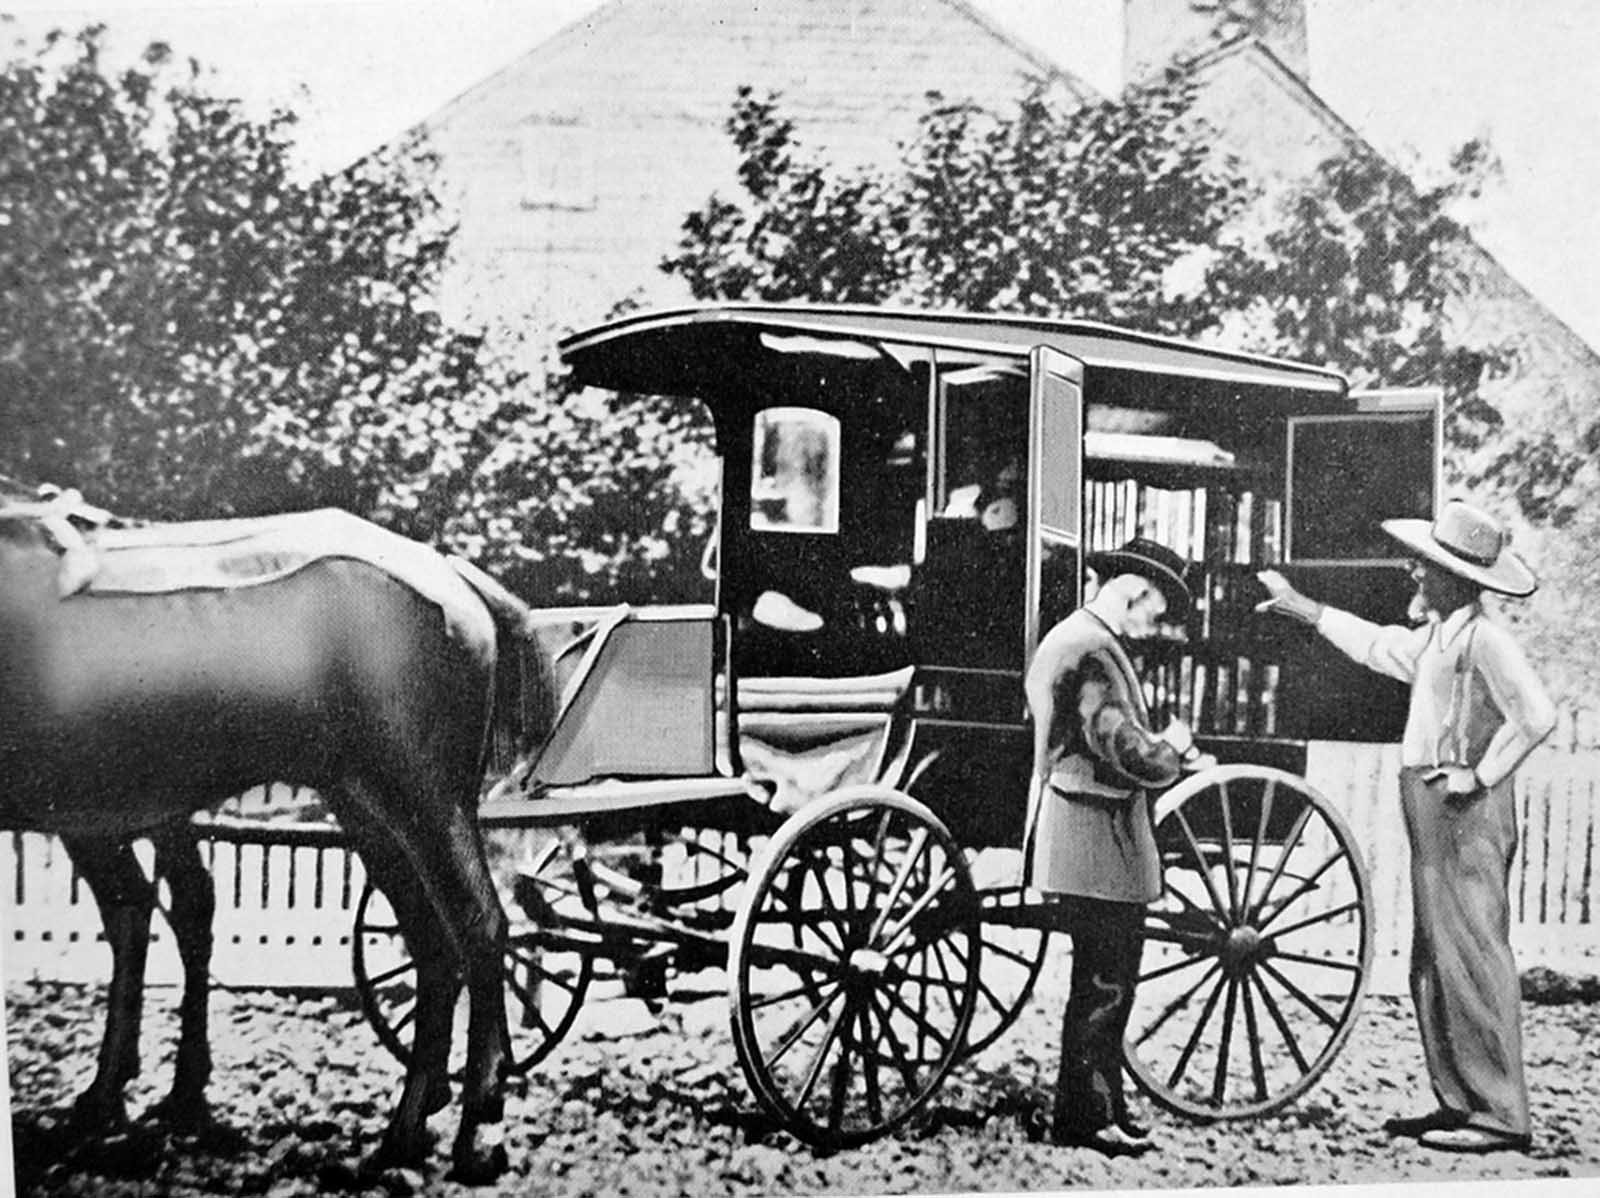 An early bookmobile horse and cart in Washington D.C.